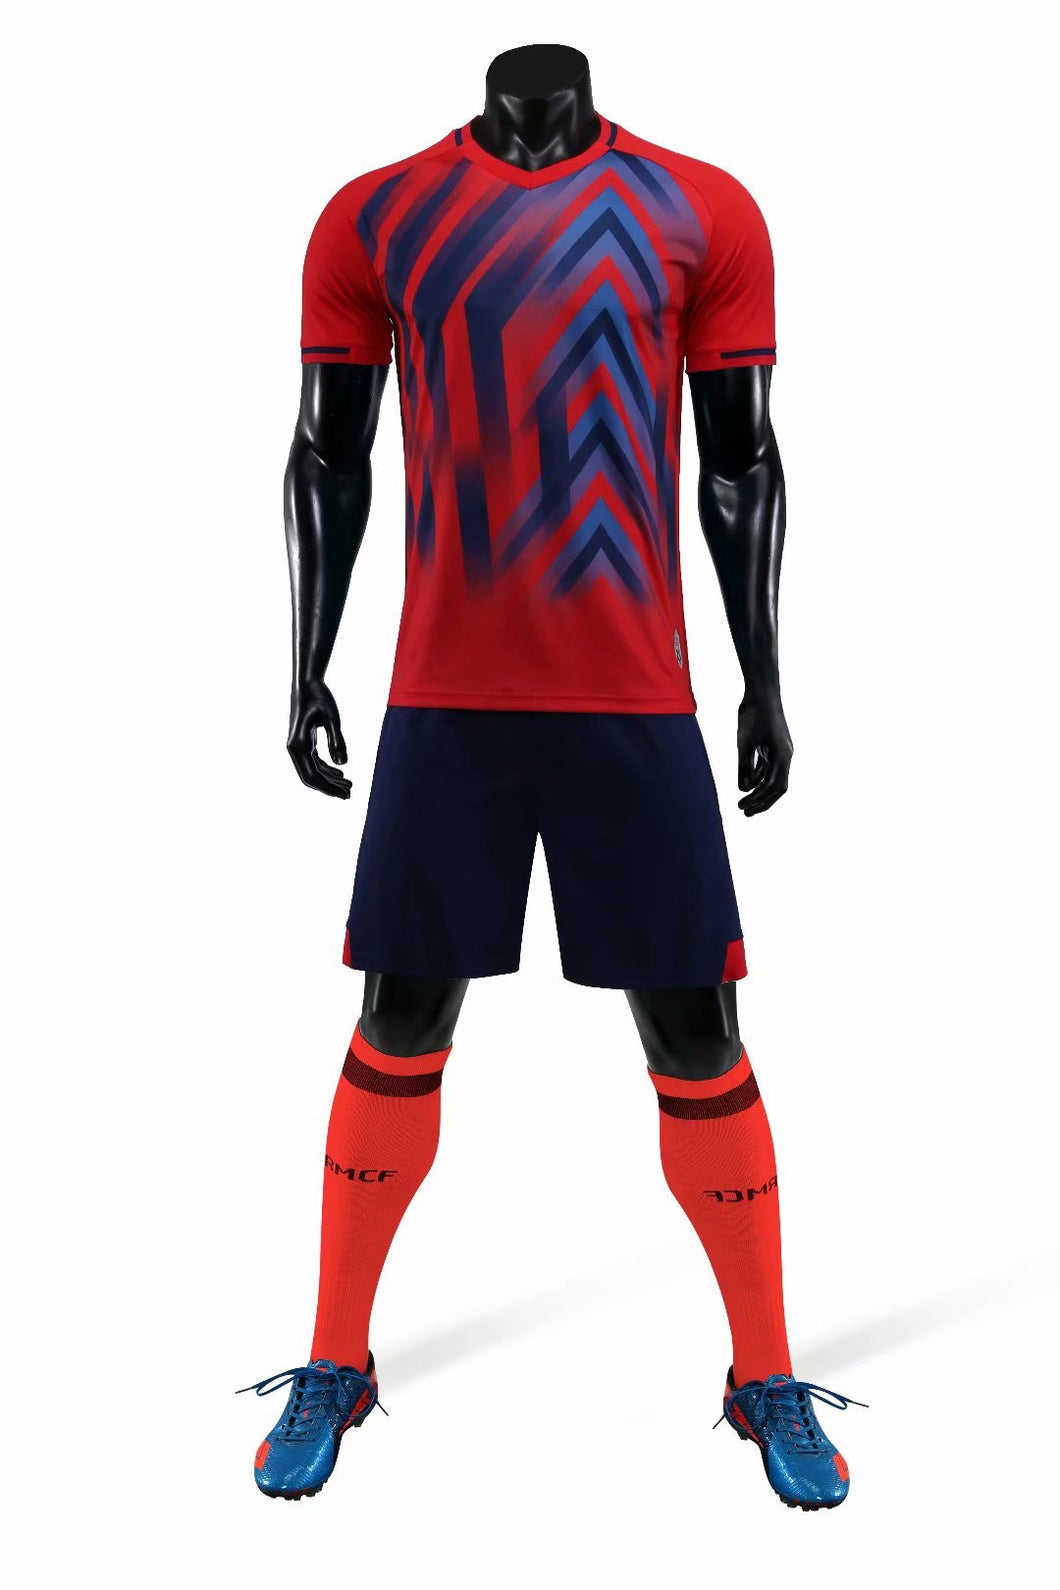 Full Football Kit - Triangular Design Red and Blue.